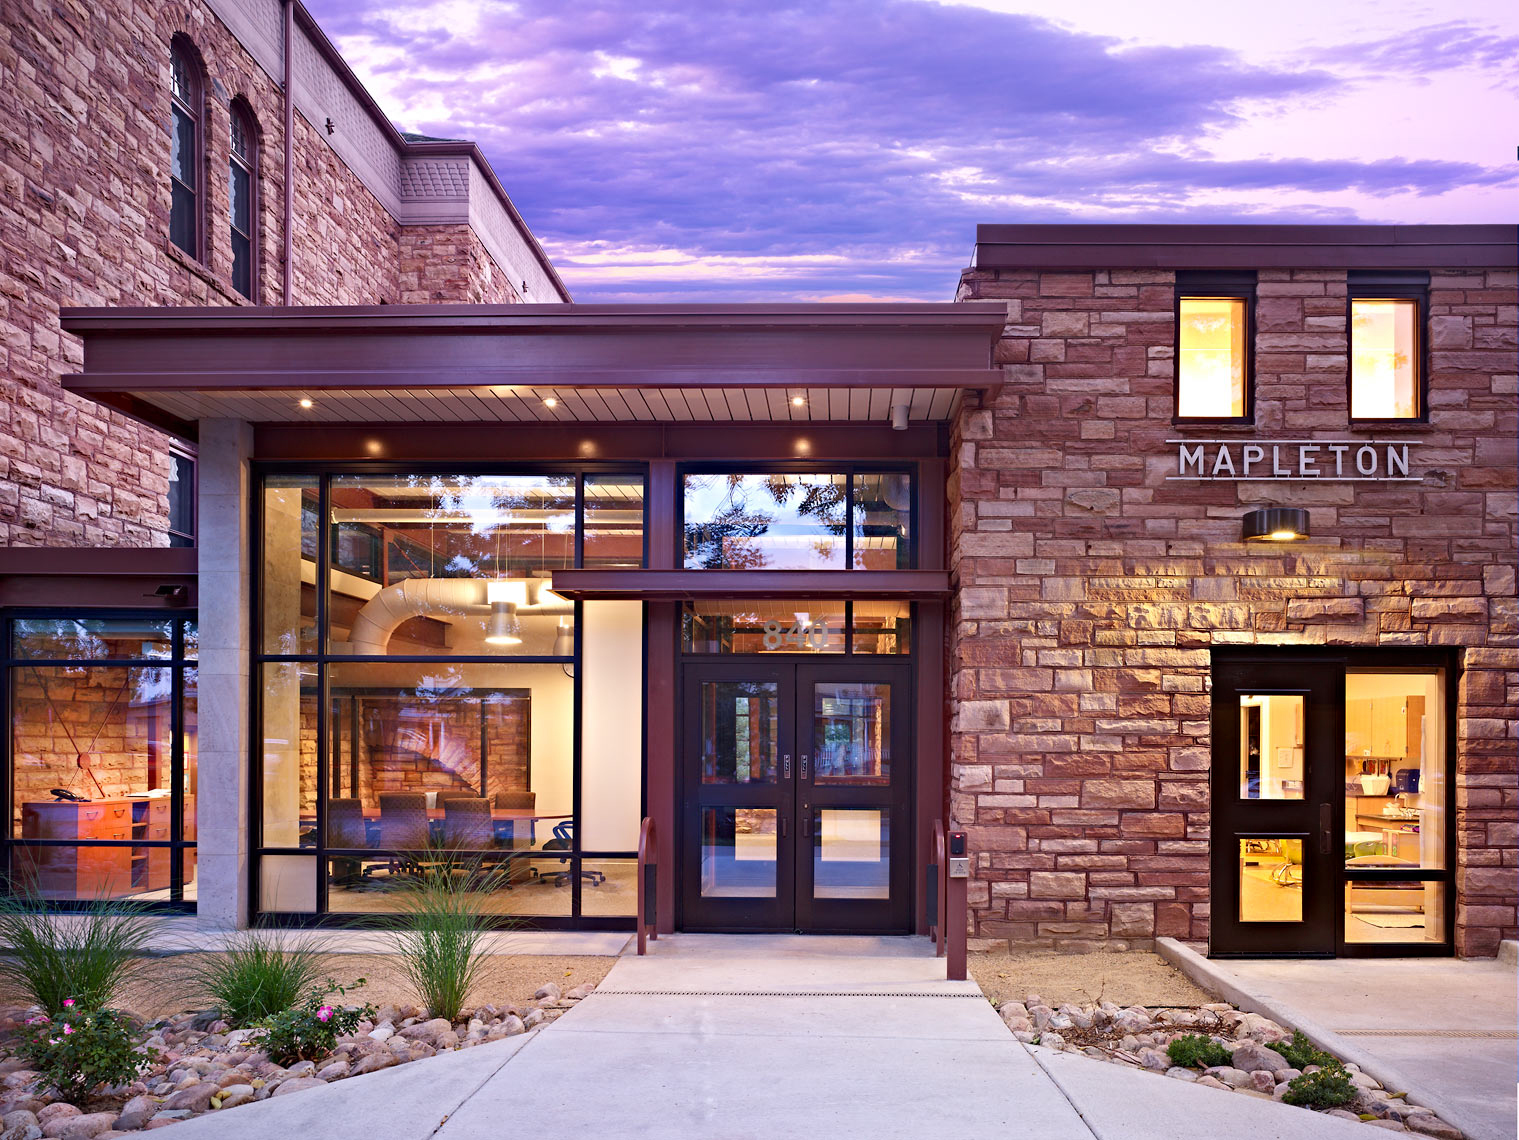 David Patterson Photography/Photography of Architecture+ Interiors, Aurora, Colorado, K-12, Higher Education